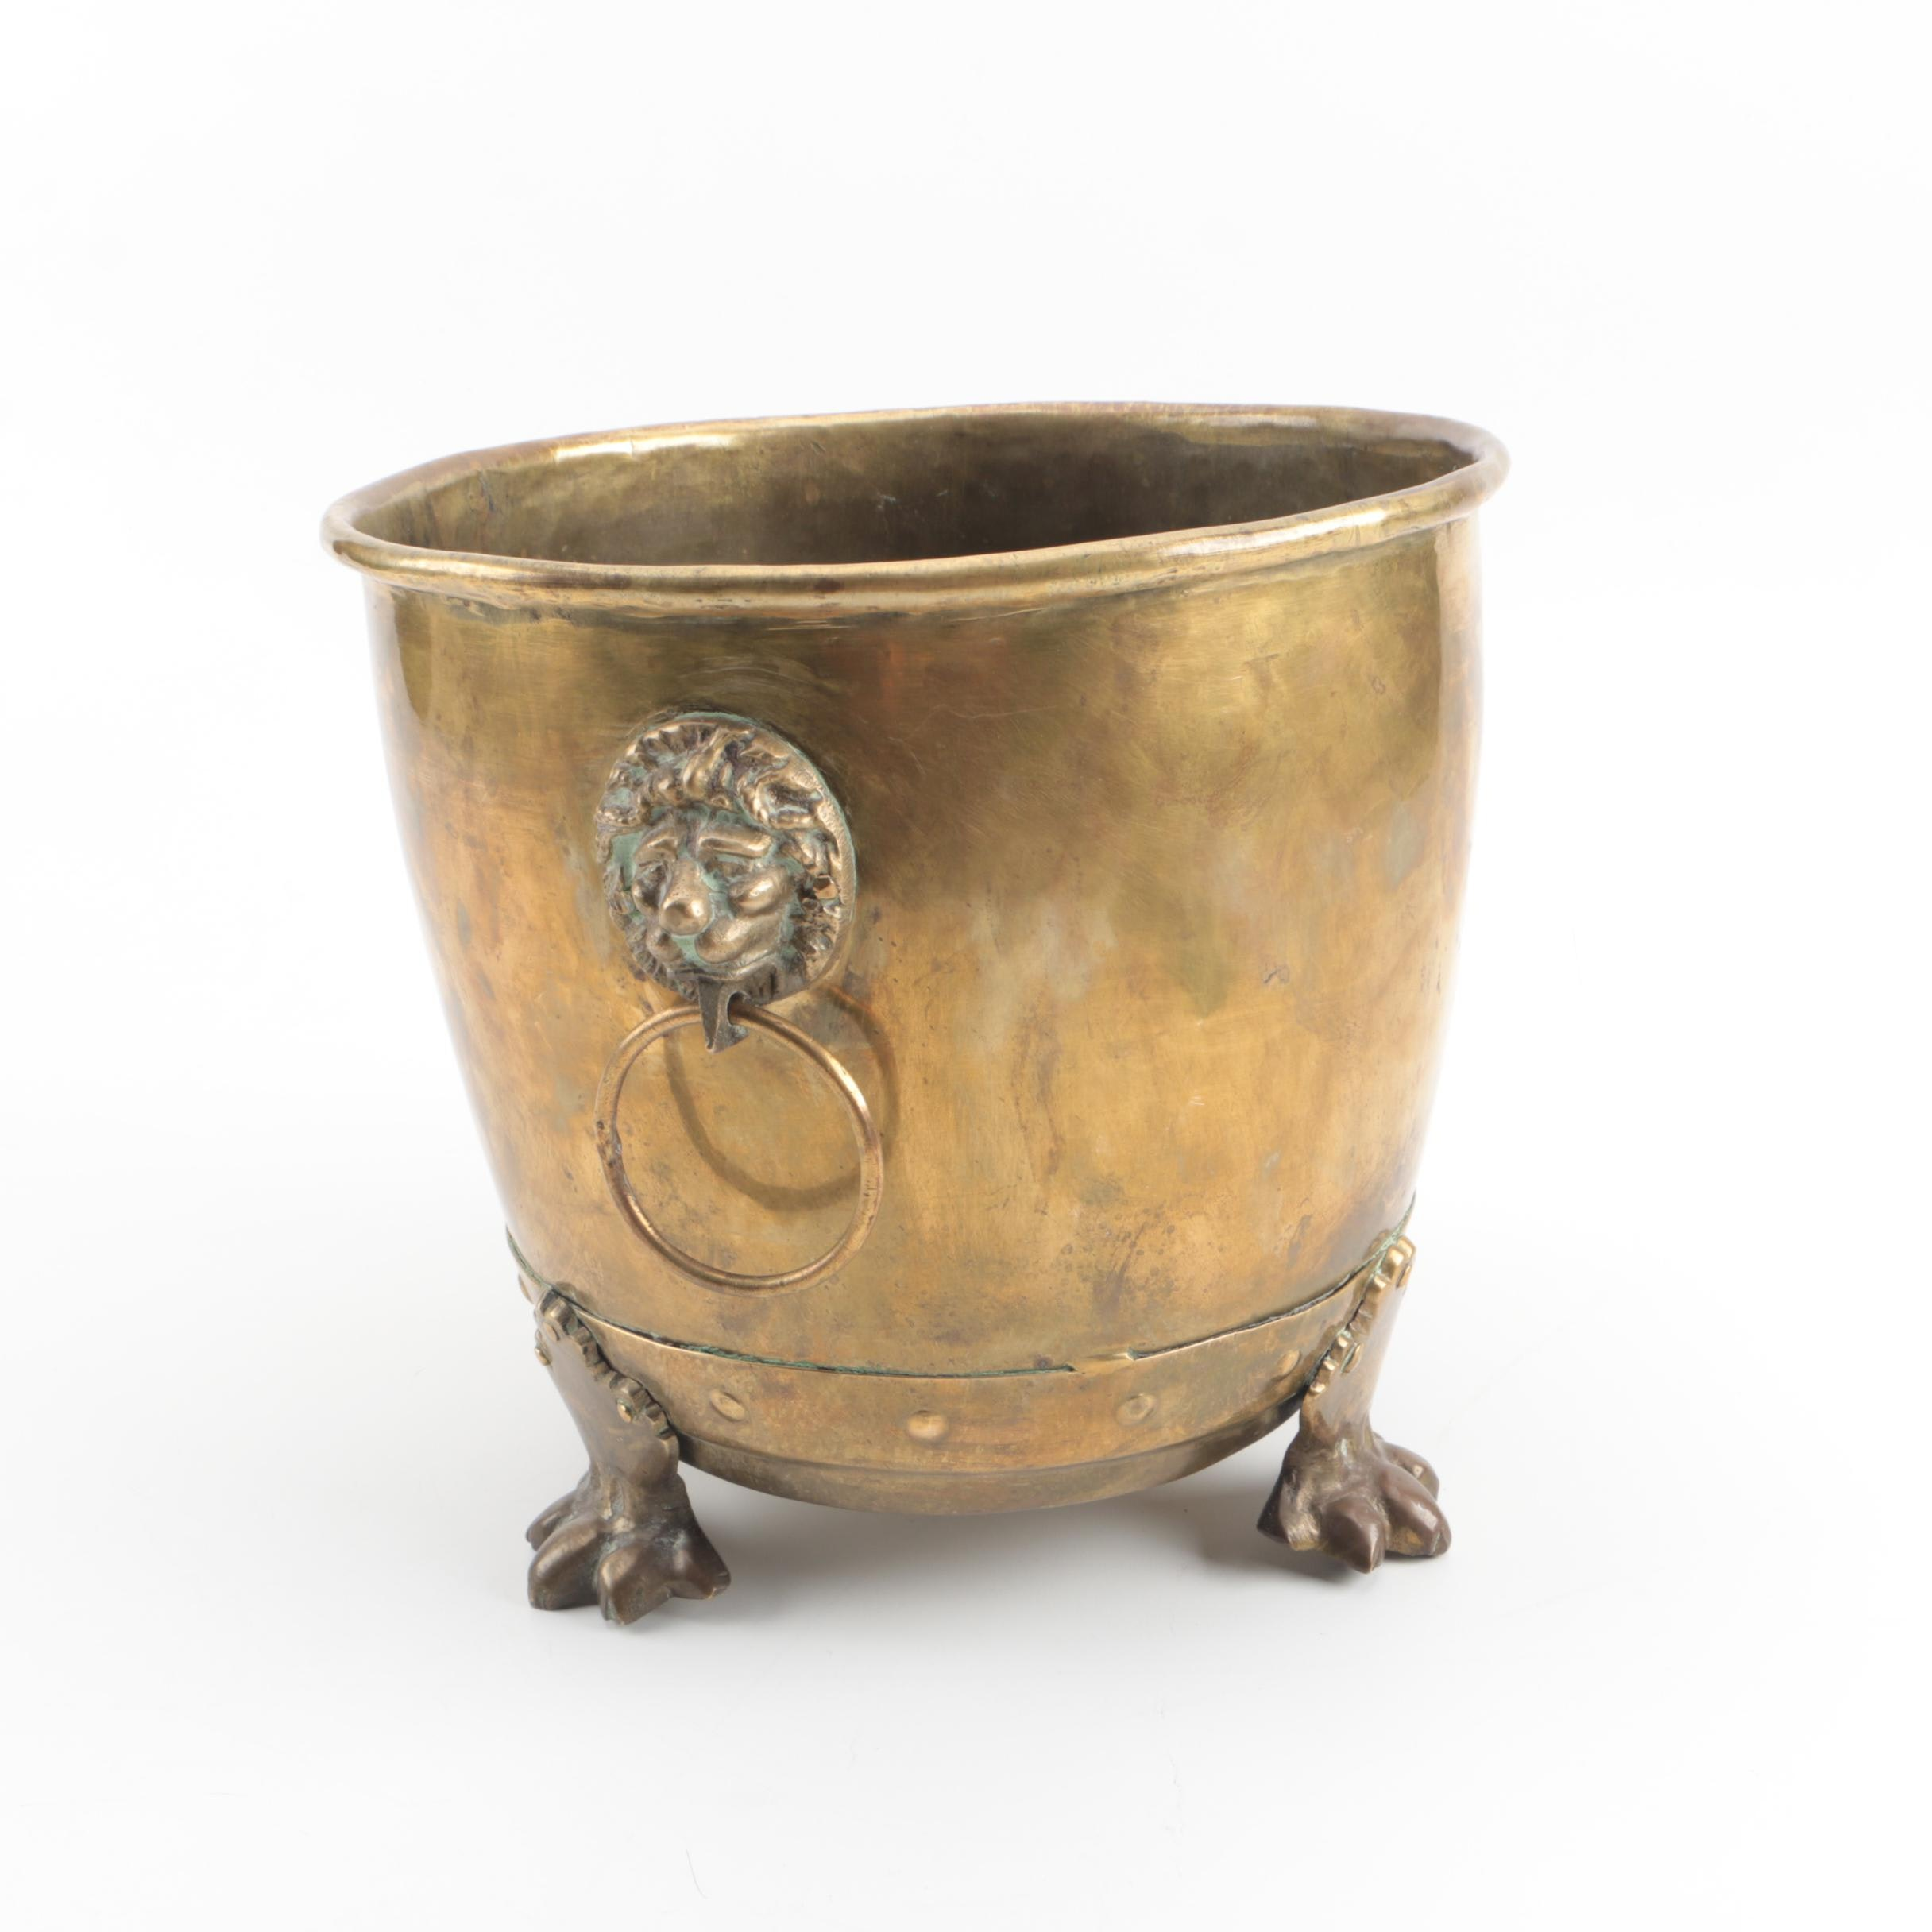 Indian Brass Footed Planter with Lion's Head Handles